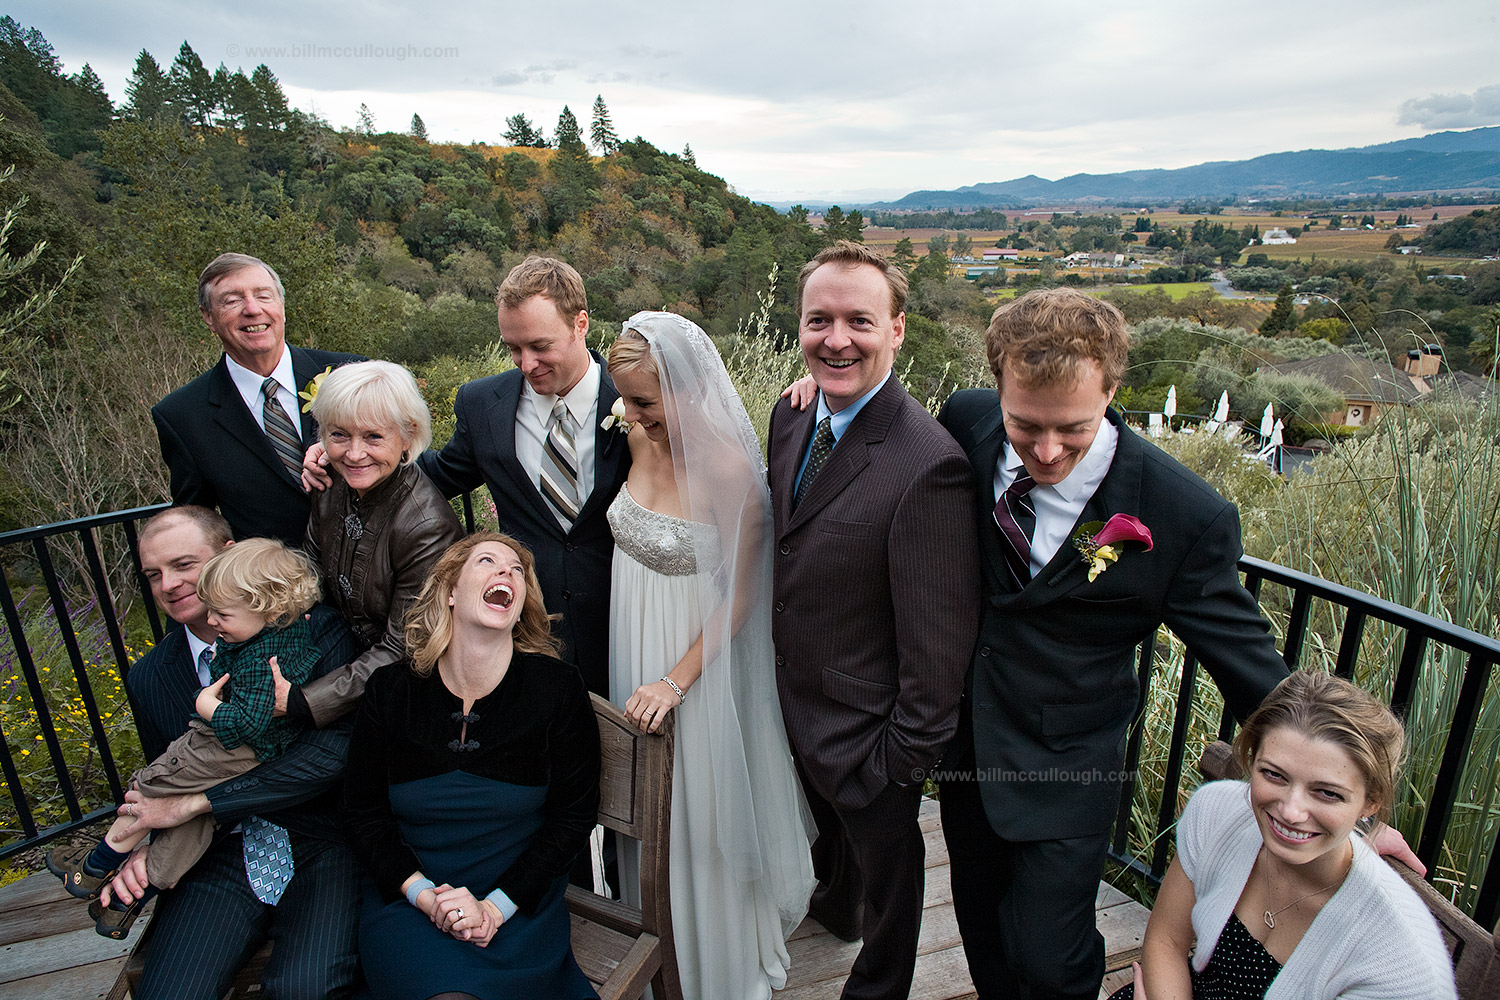 wedding-photography-napa-valley.jpg